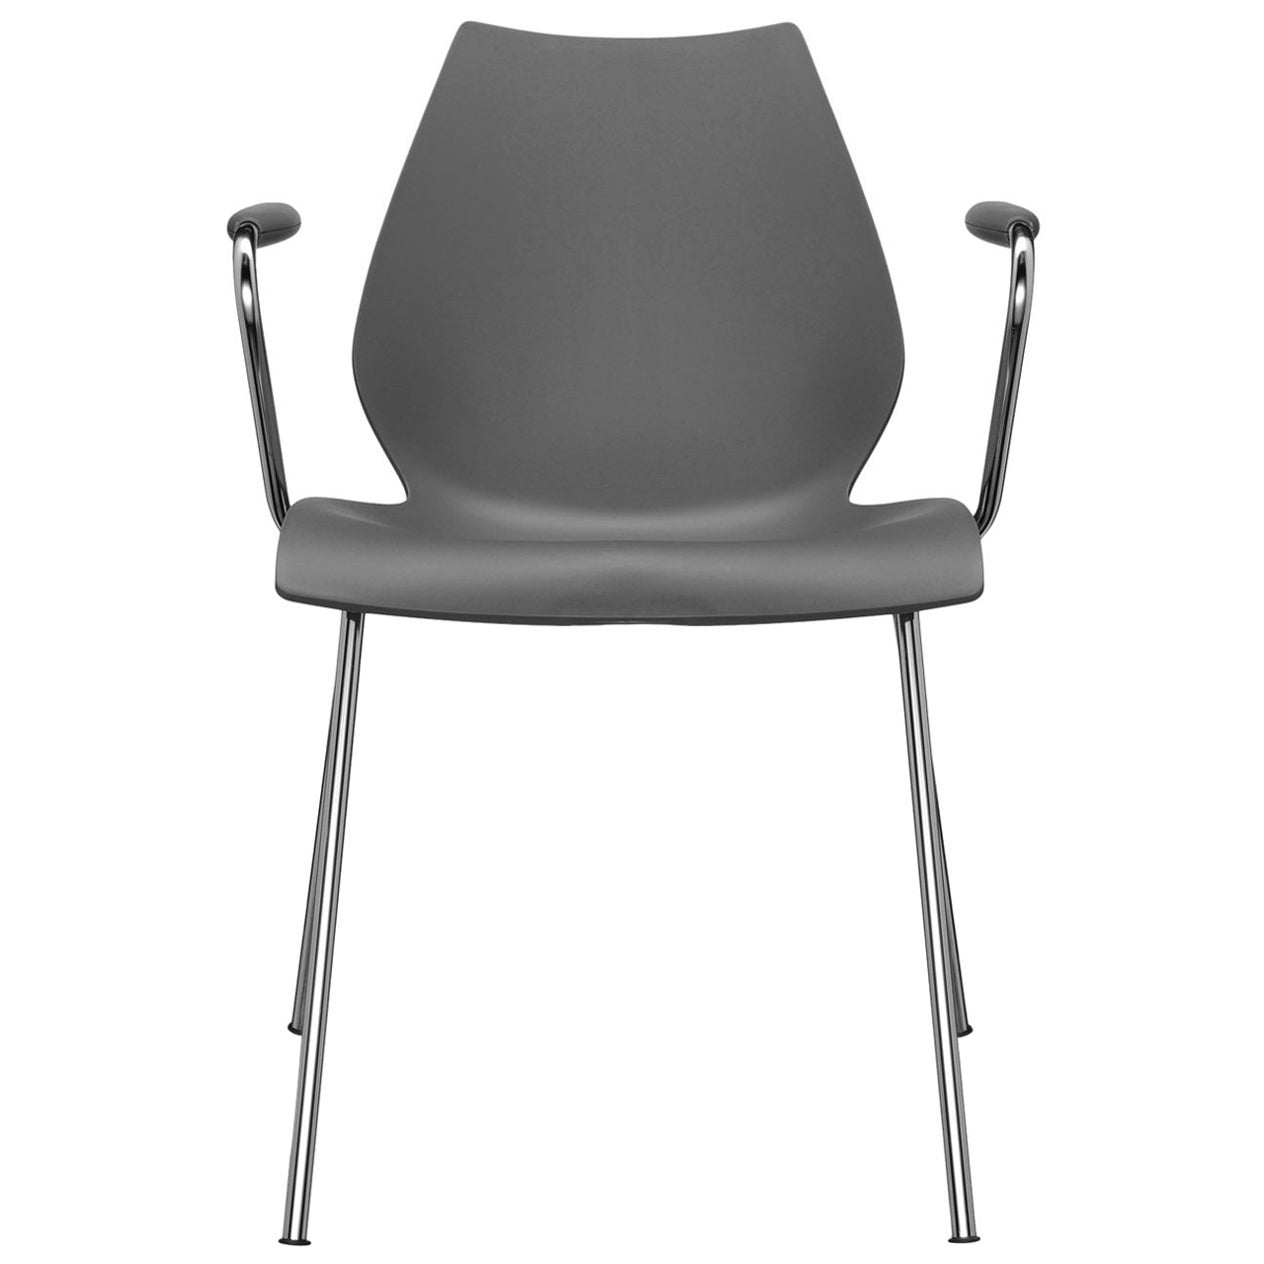 Kartell Maui Armchair in Anthracite by Ludovica and Roberto Palomba